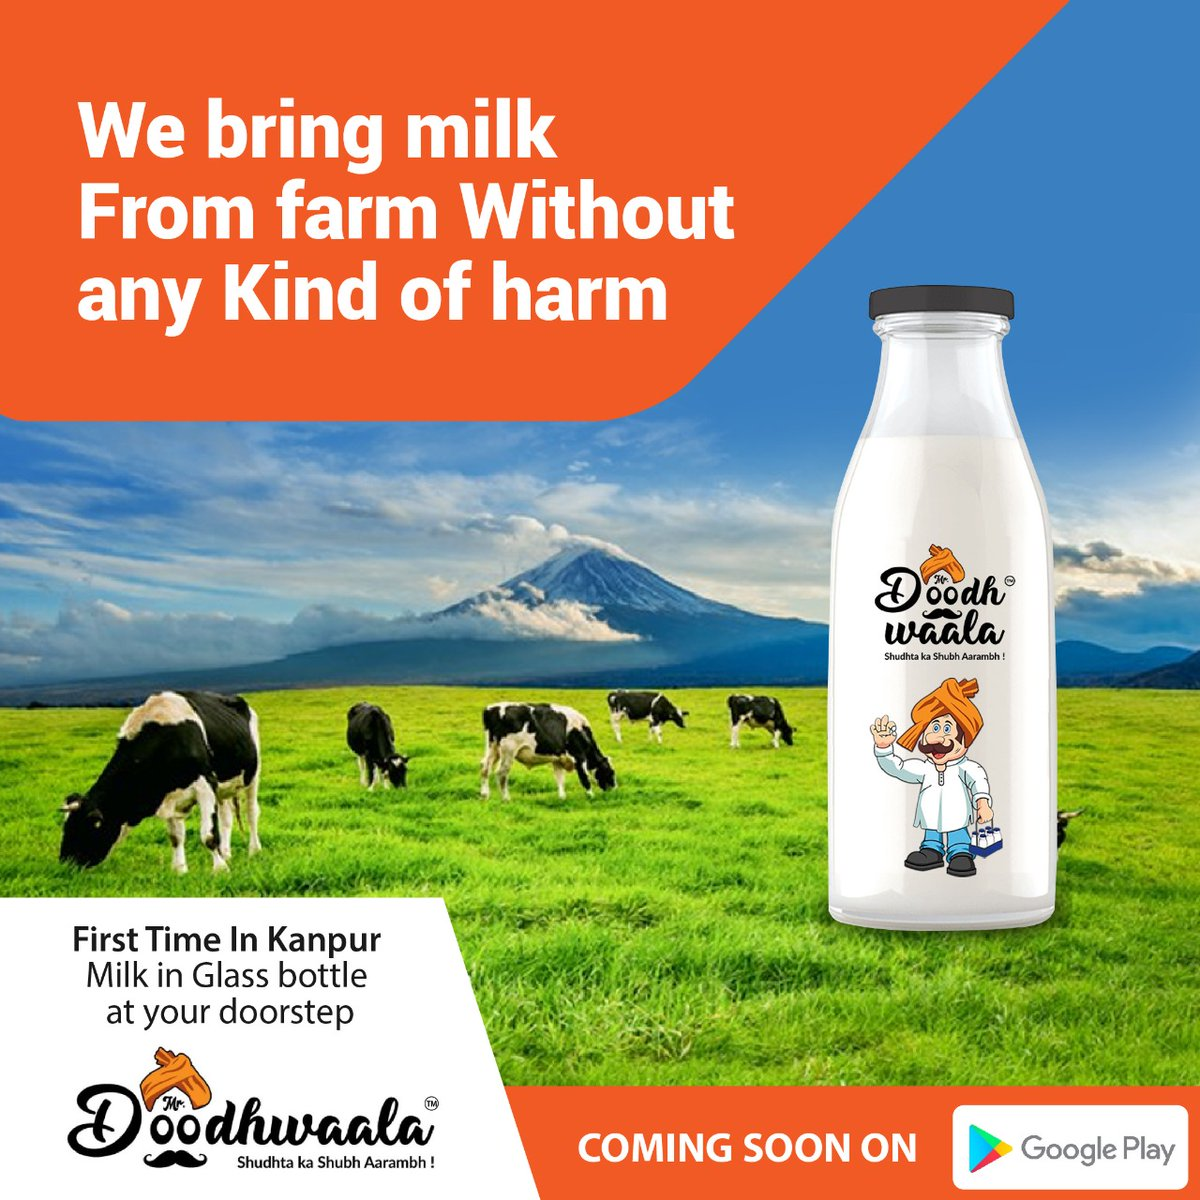 We Bring milk from Farm Without any kind of Harm #nutrition #fitness #health #healthylifestyle #healthy #healthyliving #protein #strength #healthylife #milk https://t.co/lk5oety23n